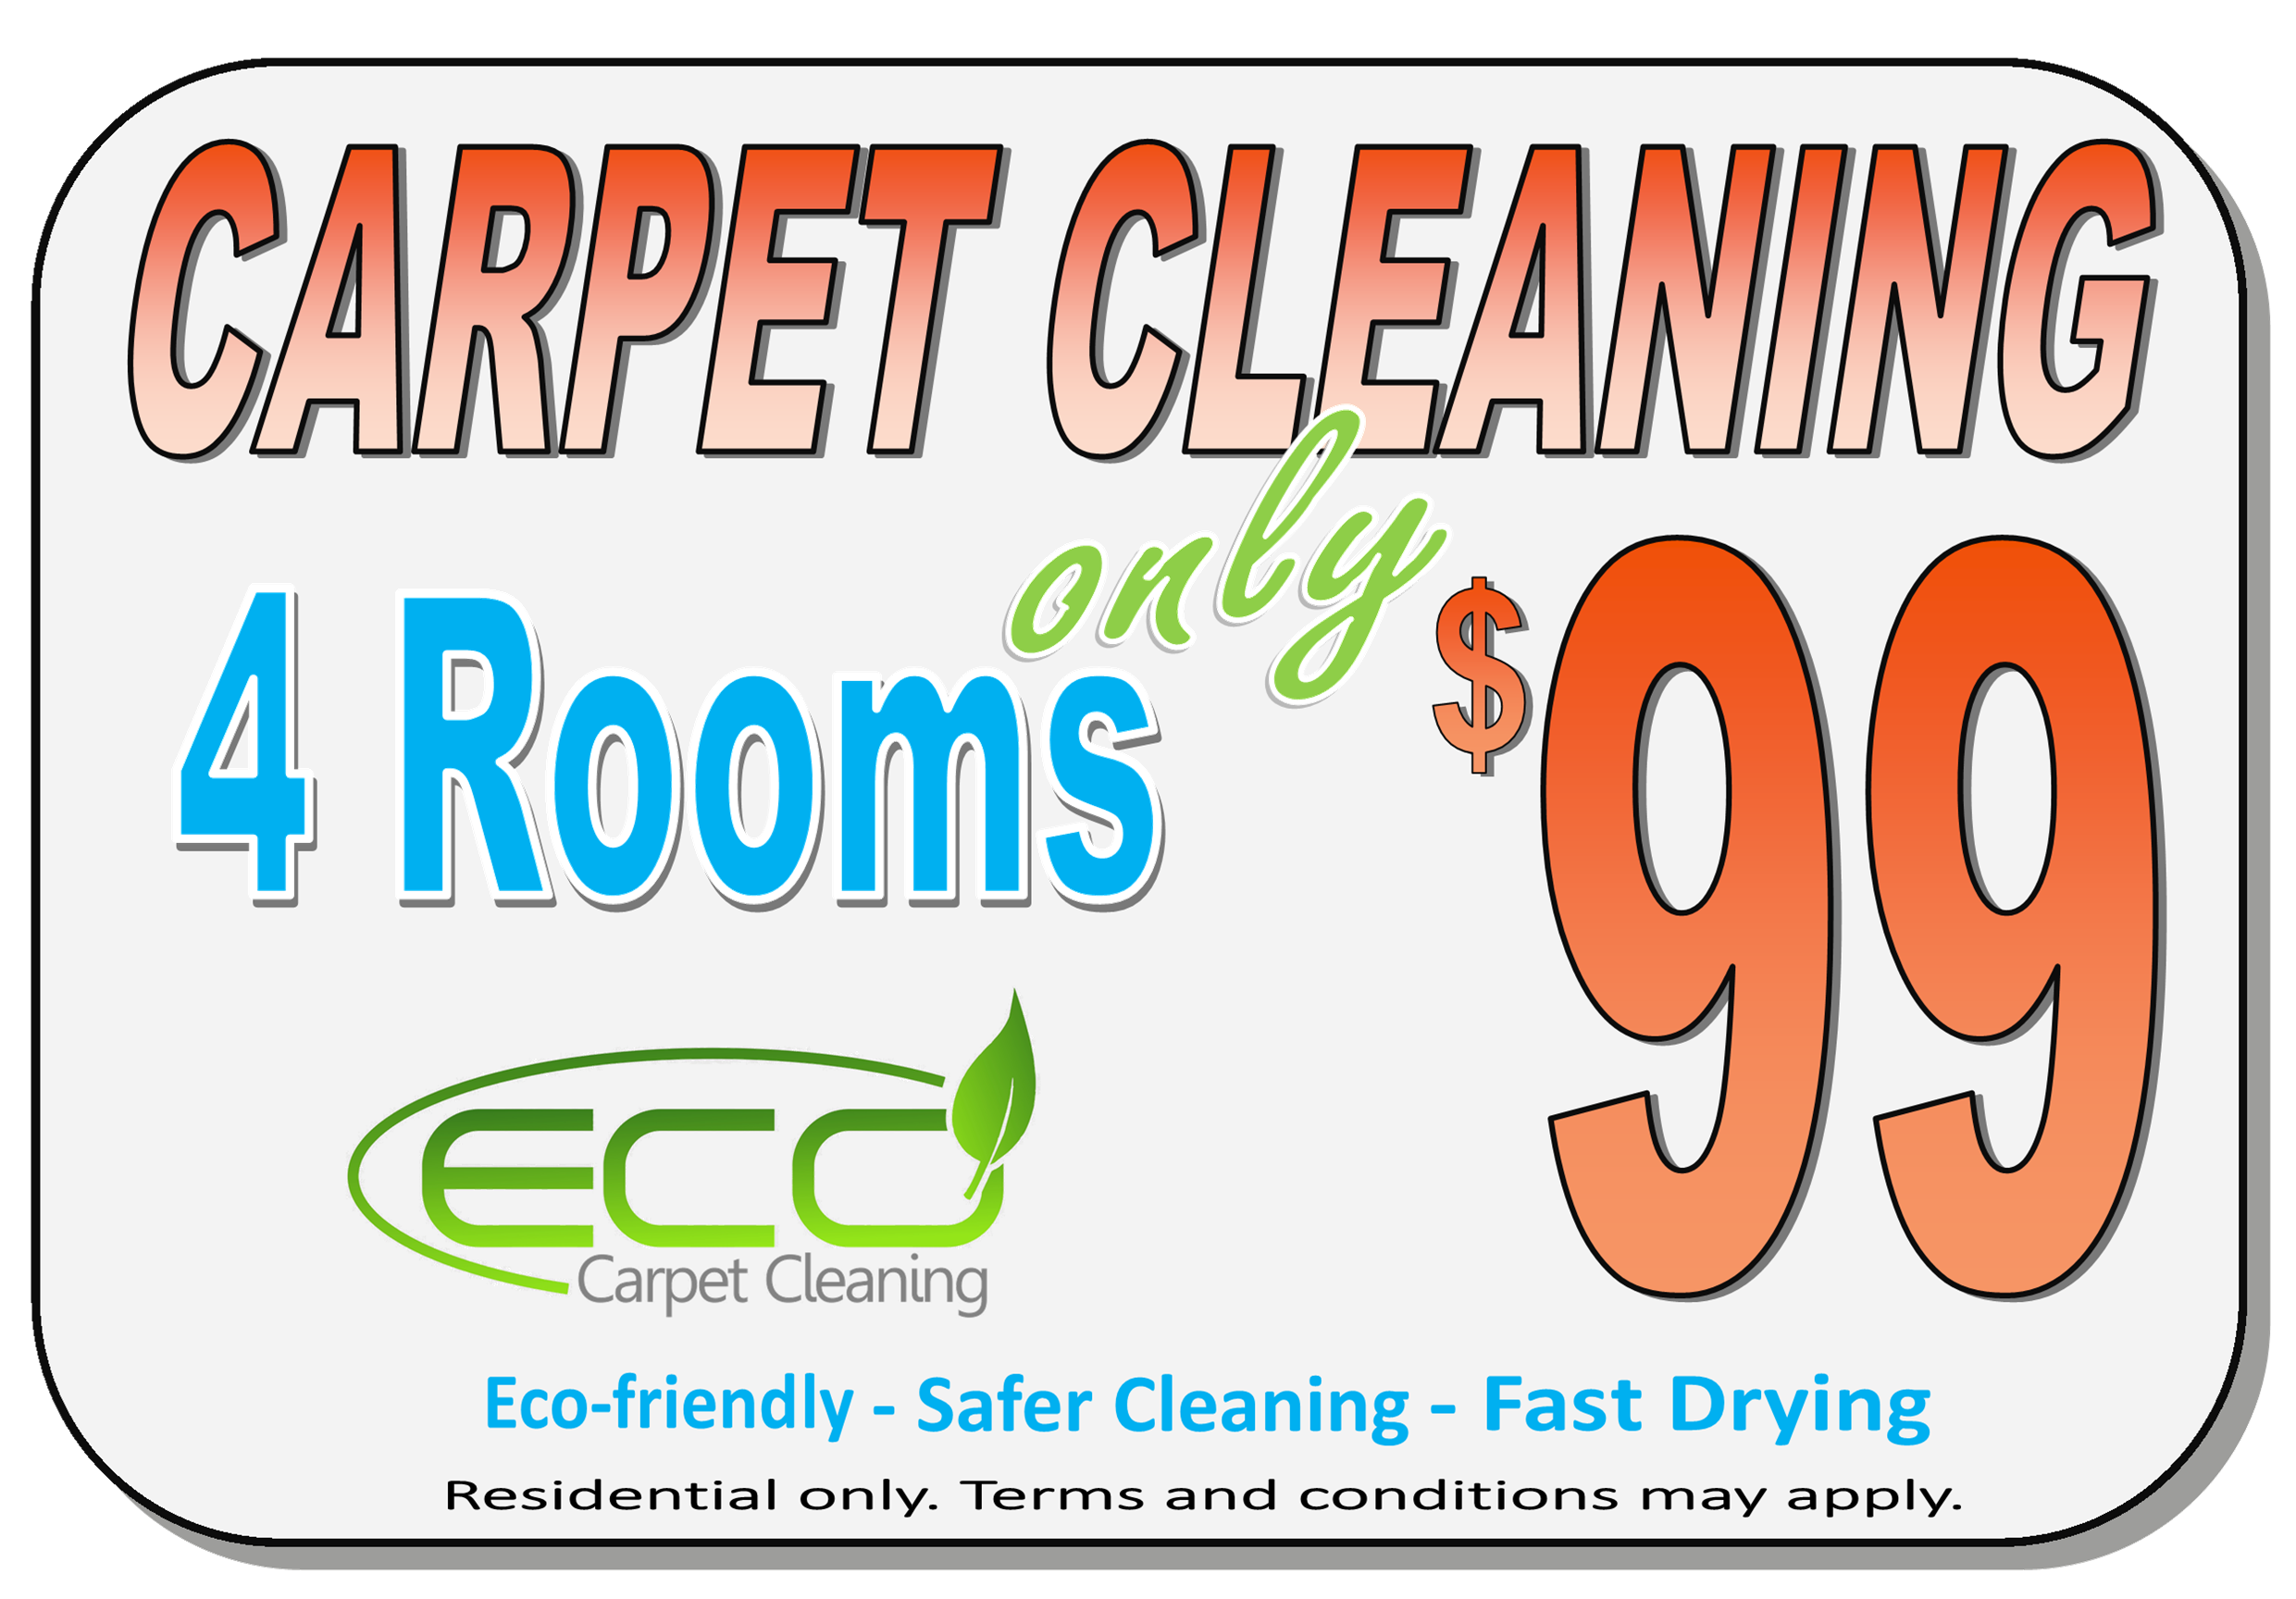 Carpet Cleaning Service Value